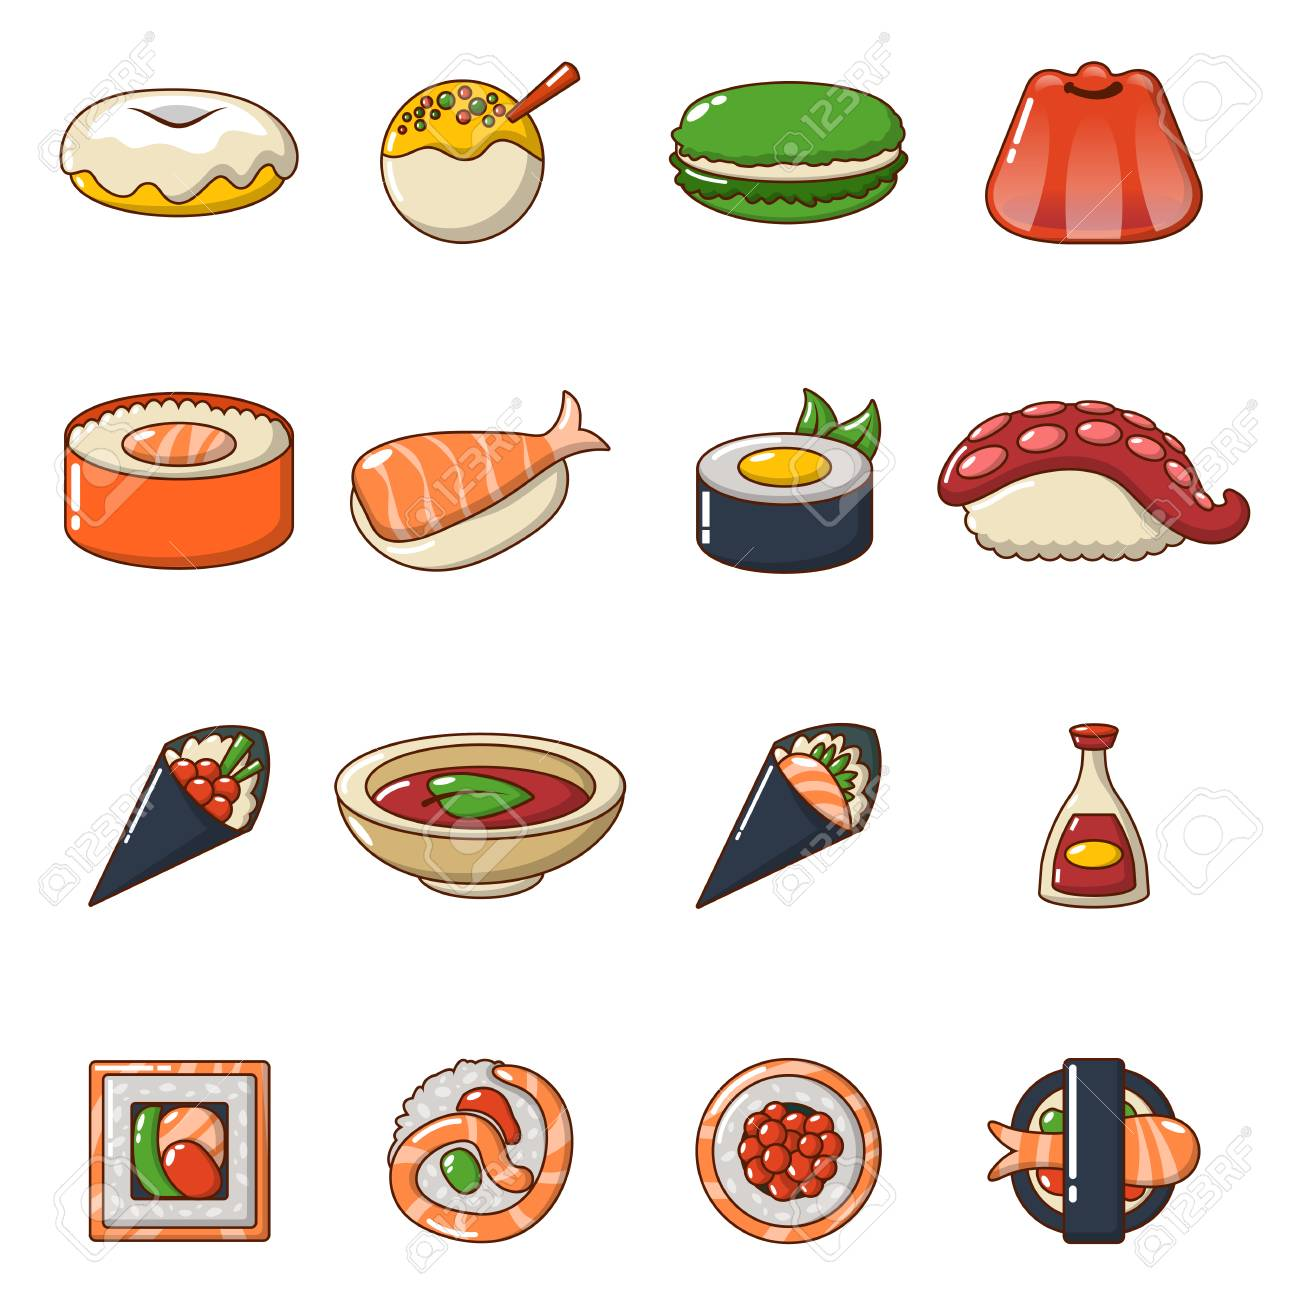 Japan Food Icons Set Cartoon Illustration Of 16 Japan Food Vector Royalty Free Cliparts Vectors And Stock Illustration Image 90915576